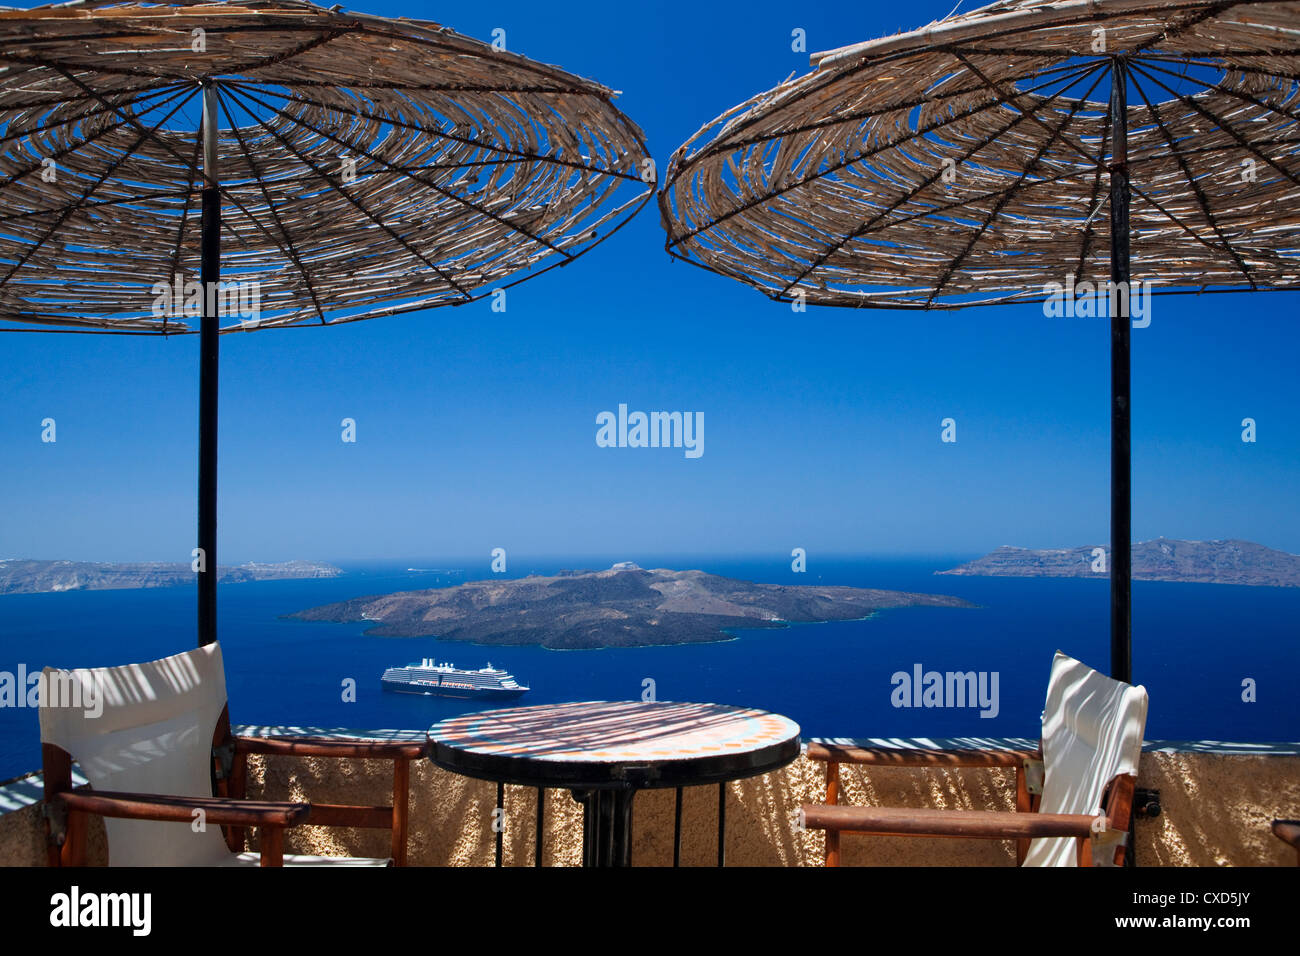 Terrace overlooking the caldera, Santorini, Cyclades, Greek Islands, Greece, Europe - Stock Image